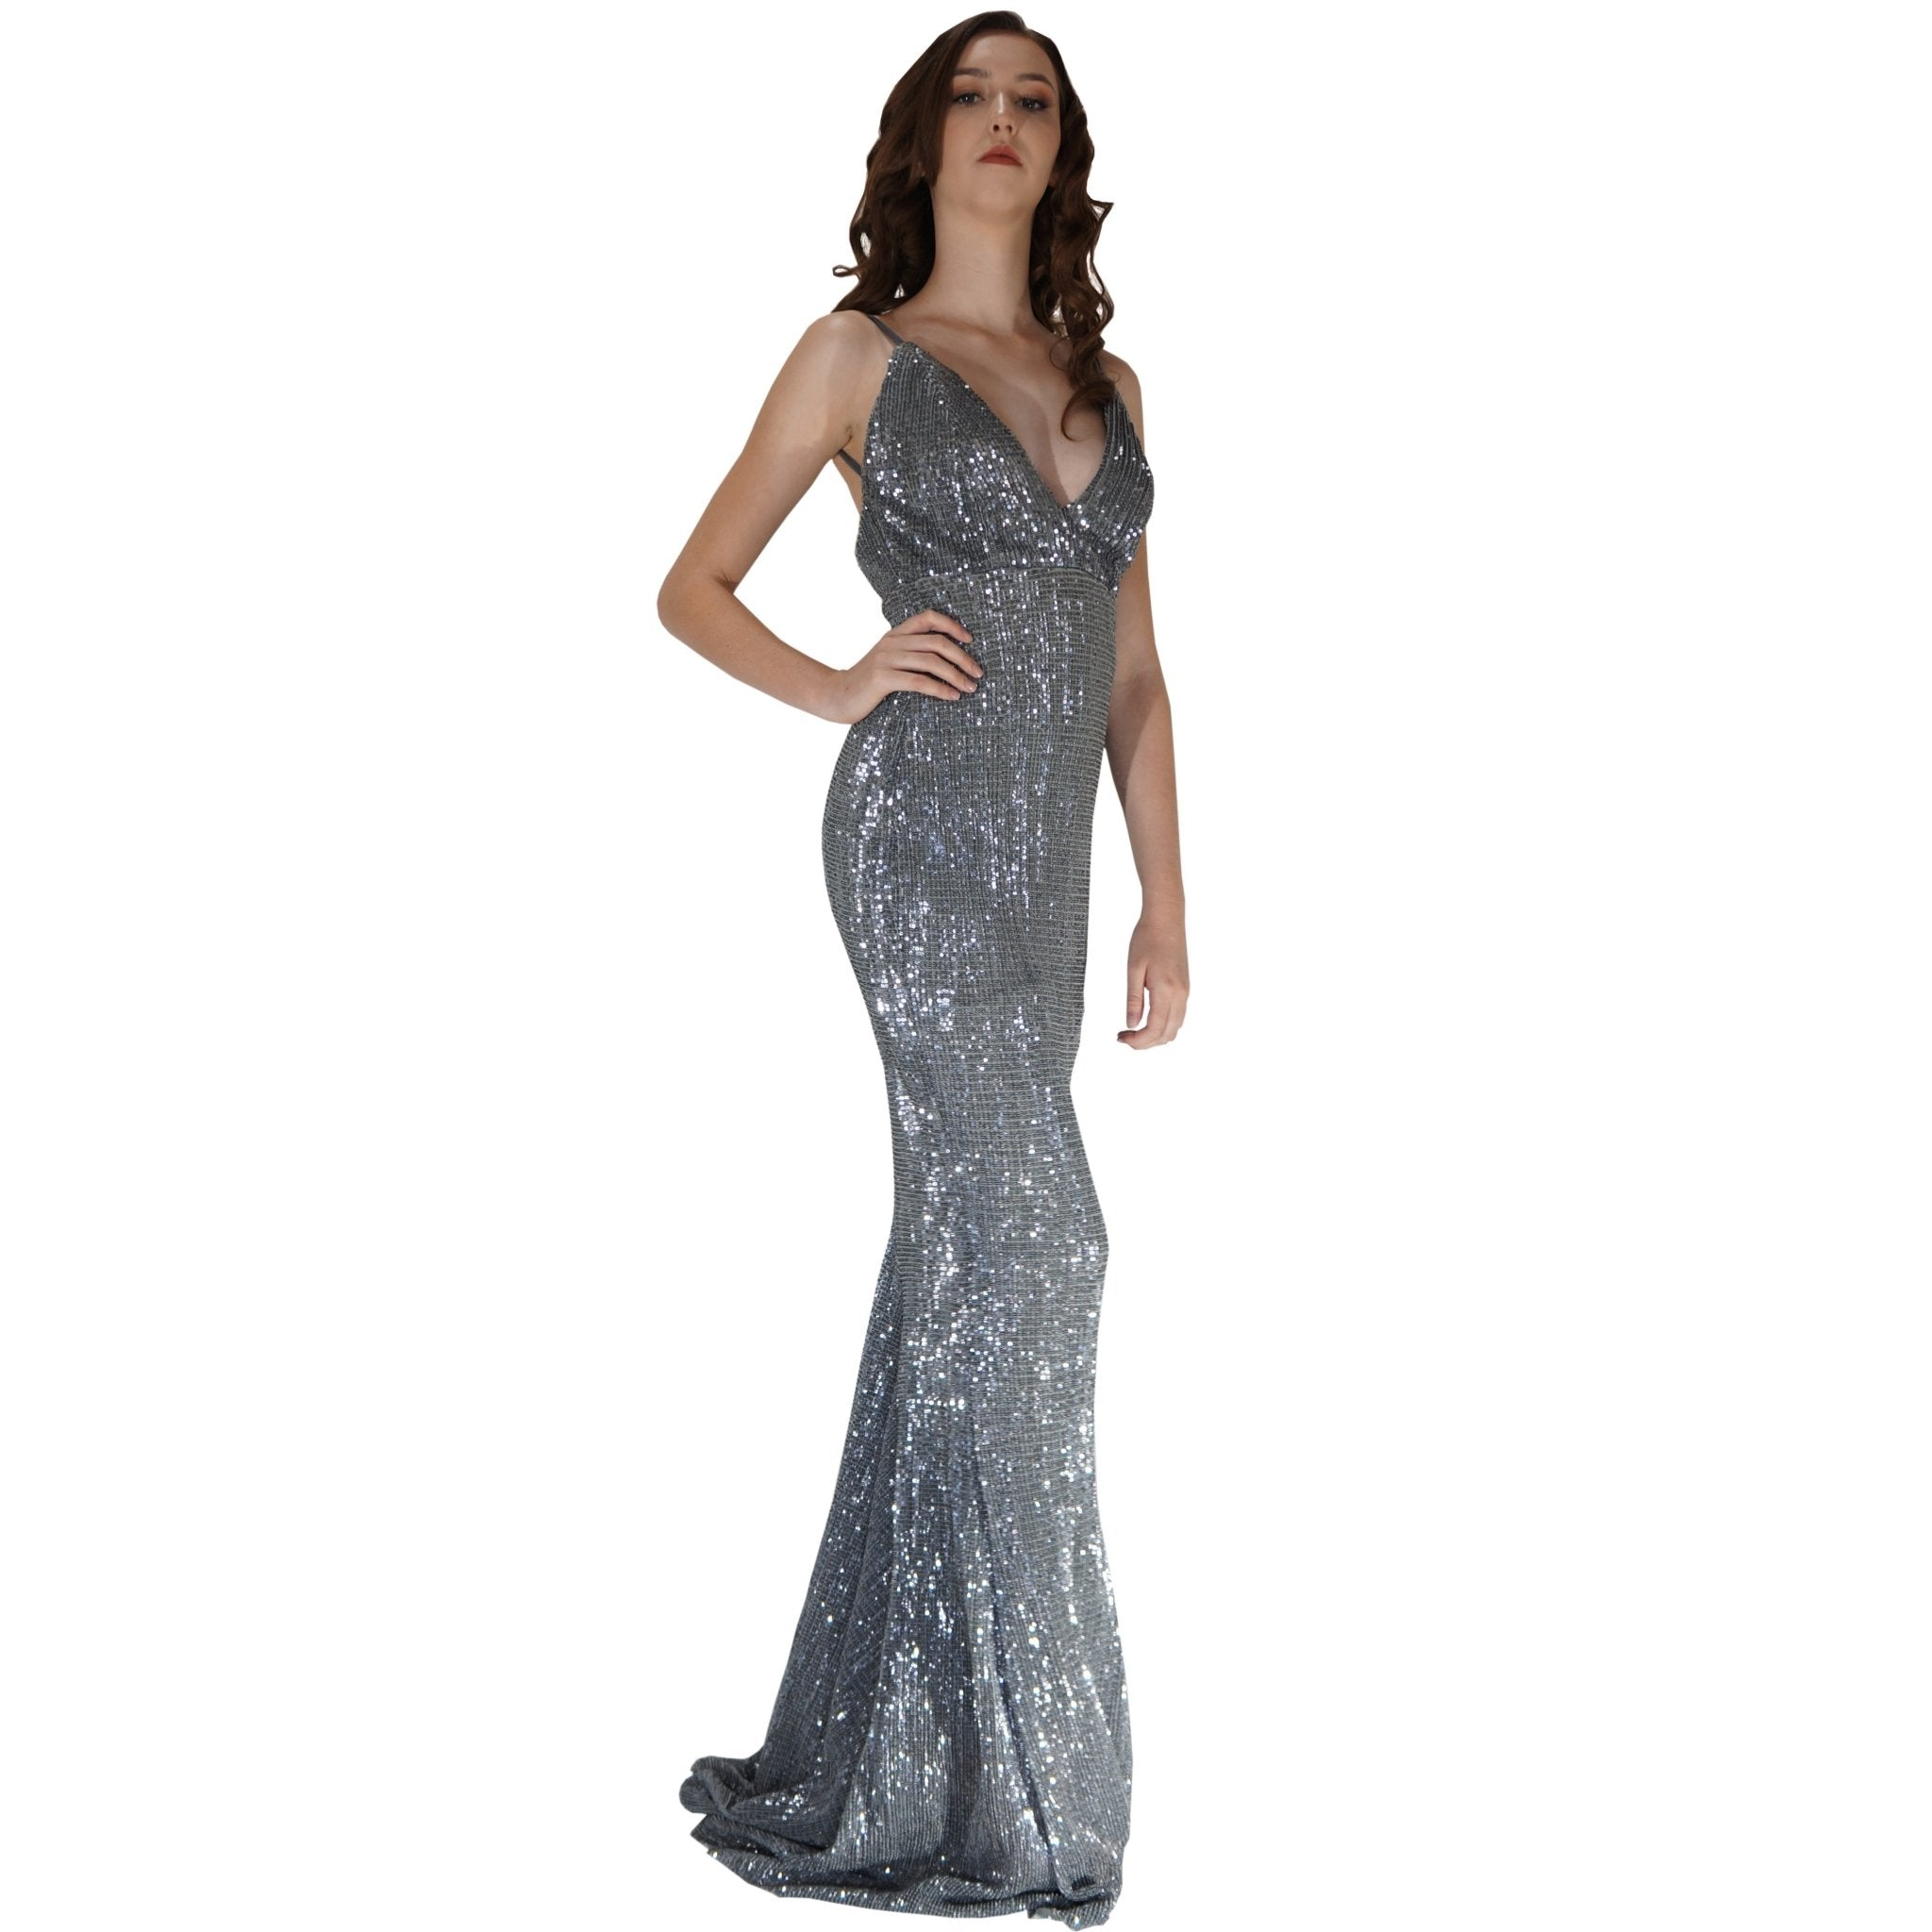 Long Backless Grey Sequin Evening Dress Envious Bridal & Formal